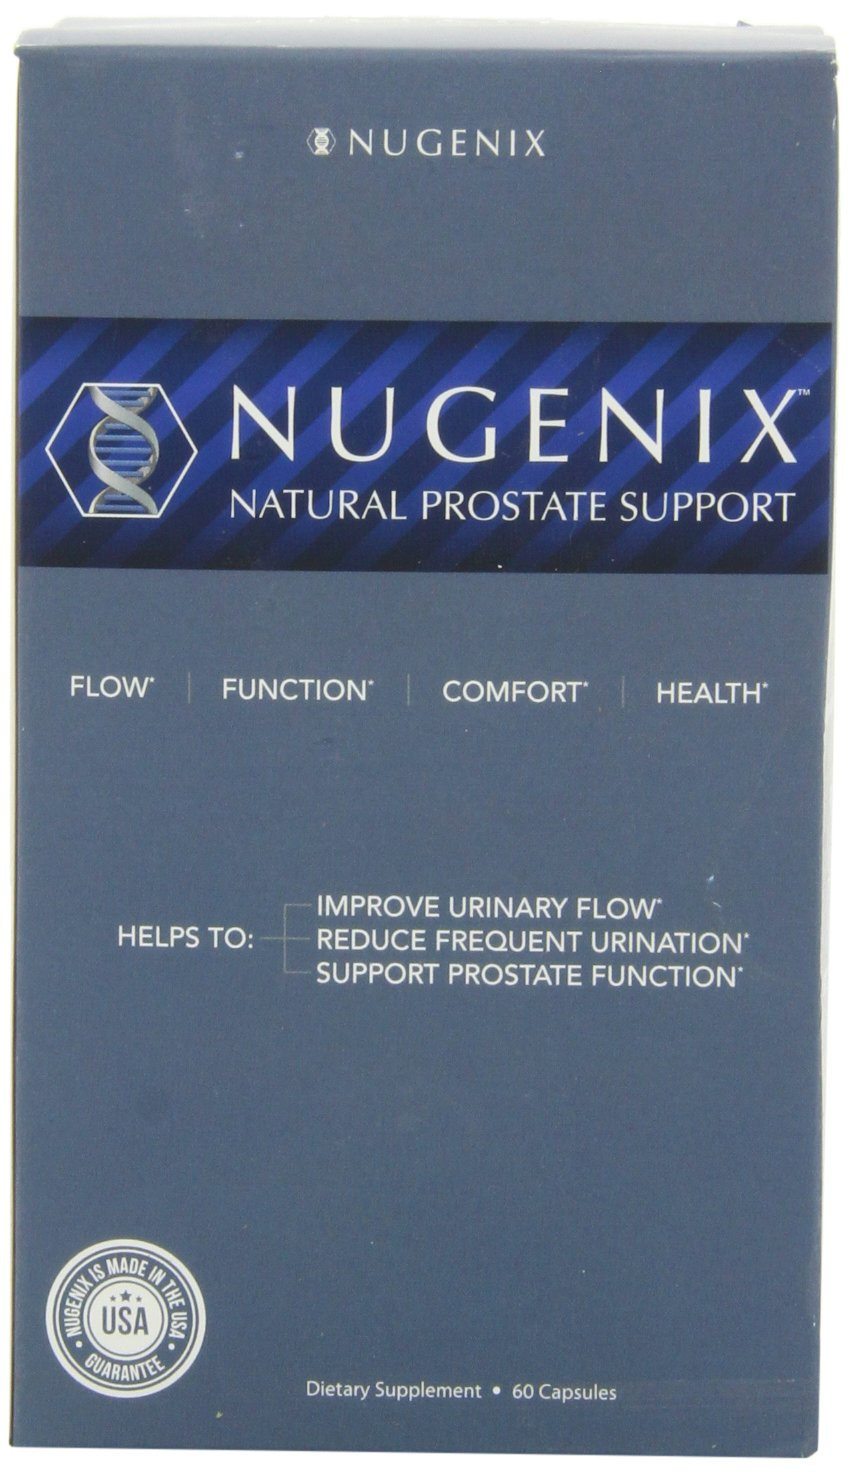 Nugenix Natural Prostate Support Capsules, 60 Count